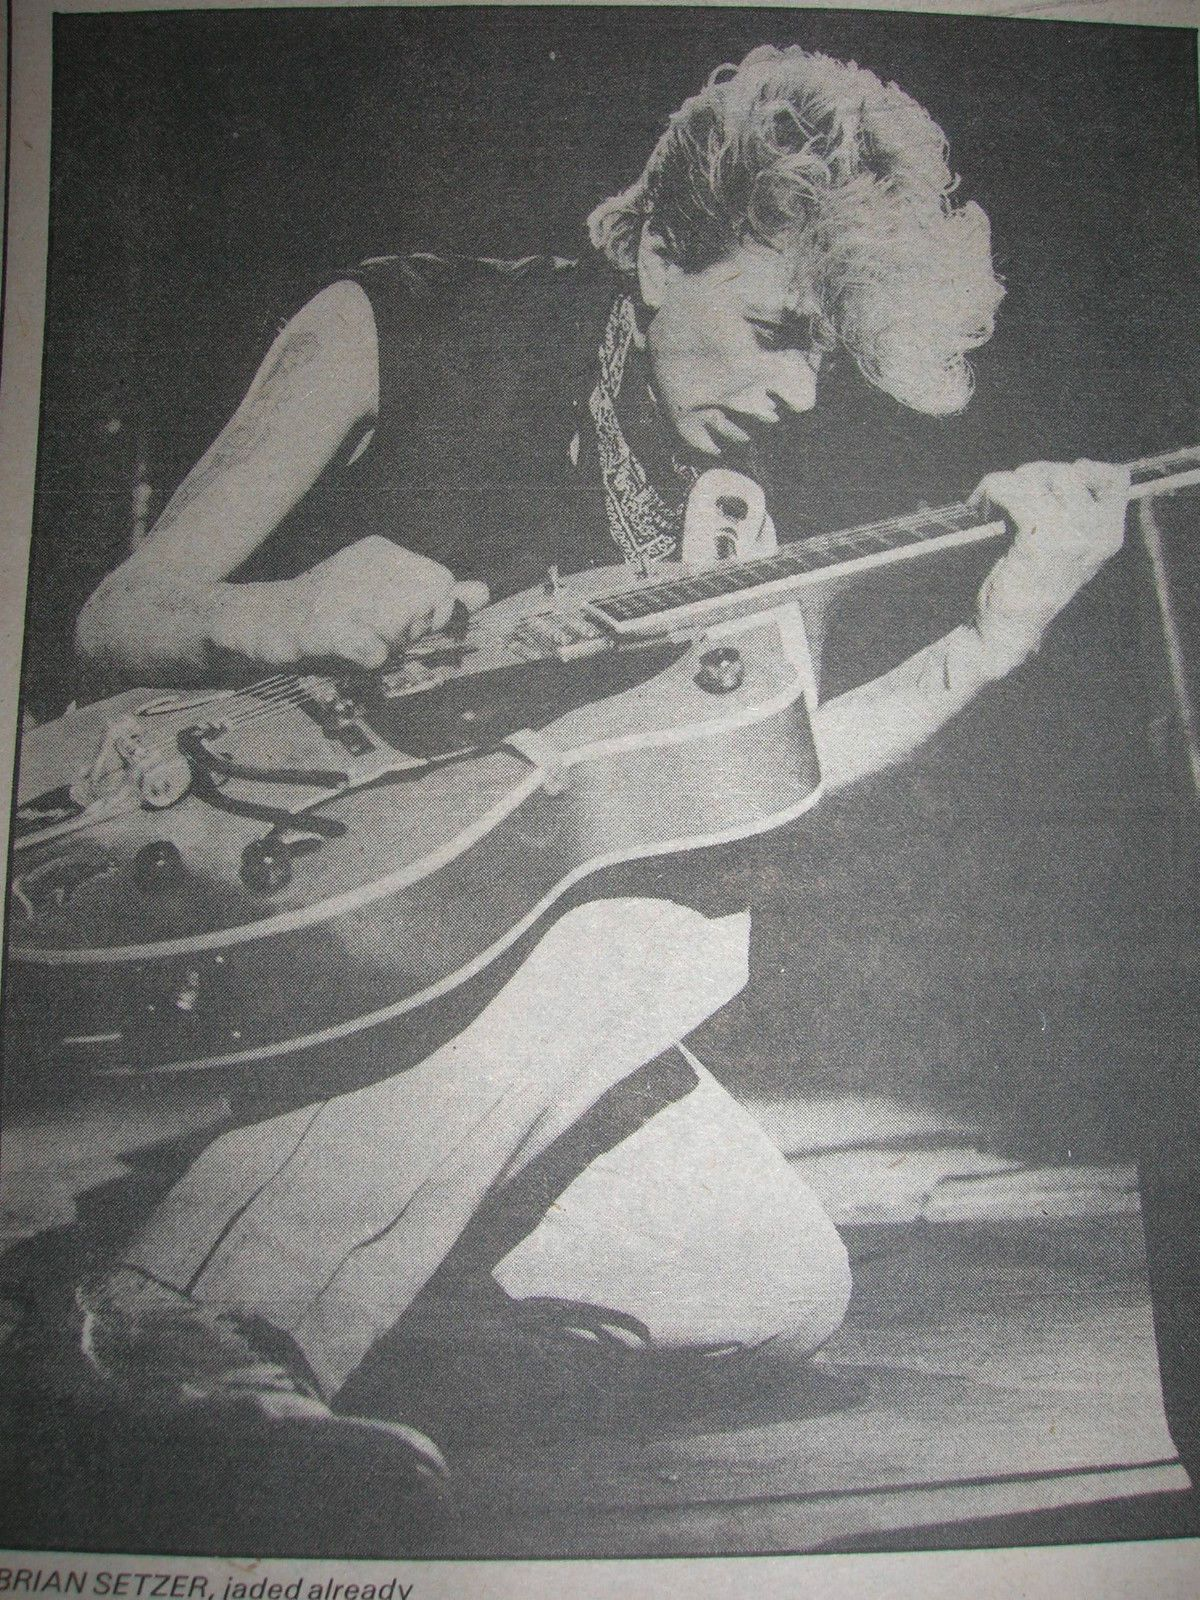 VINTAGE 1981 STRAY CATS BARRACUDAS REVIEW AD ARTICLE